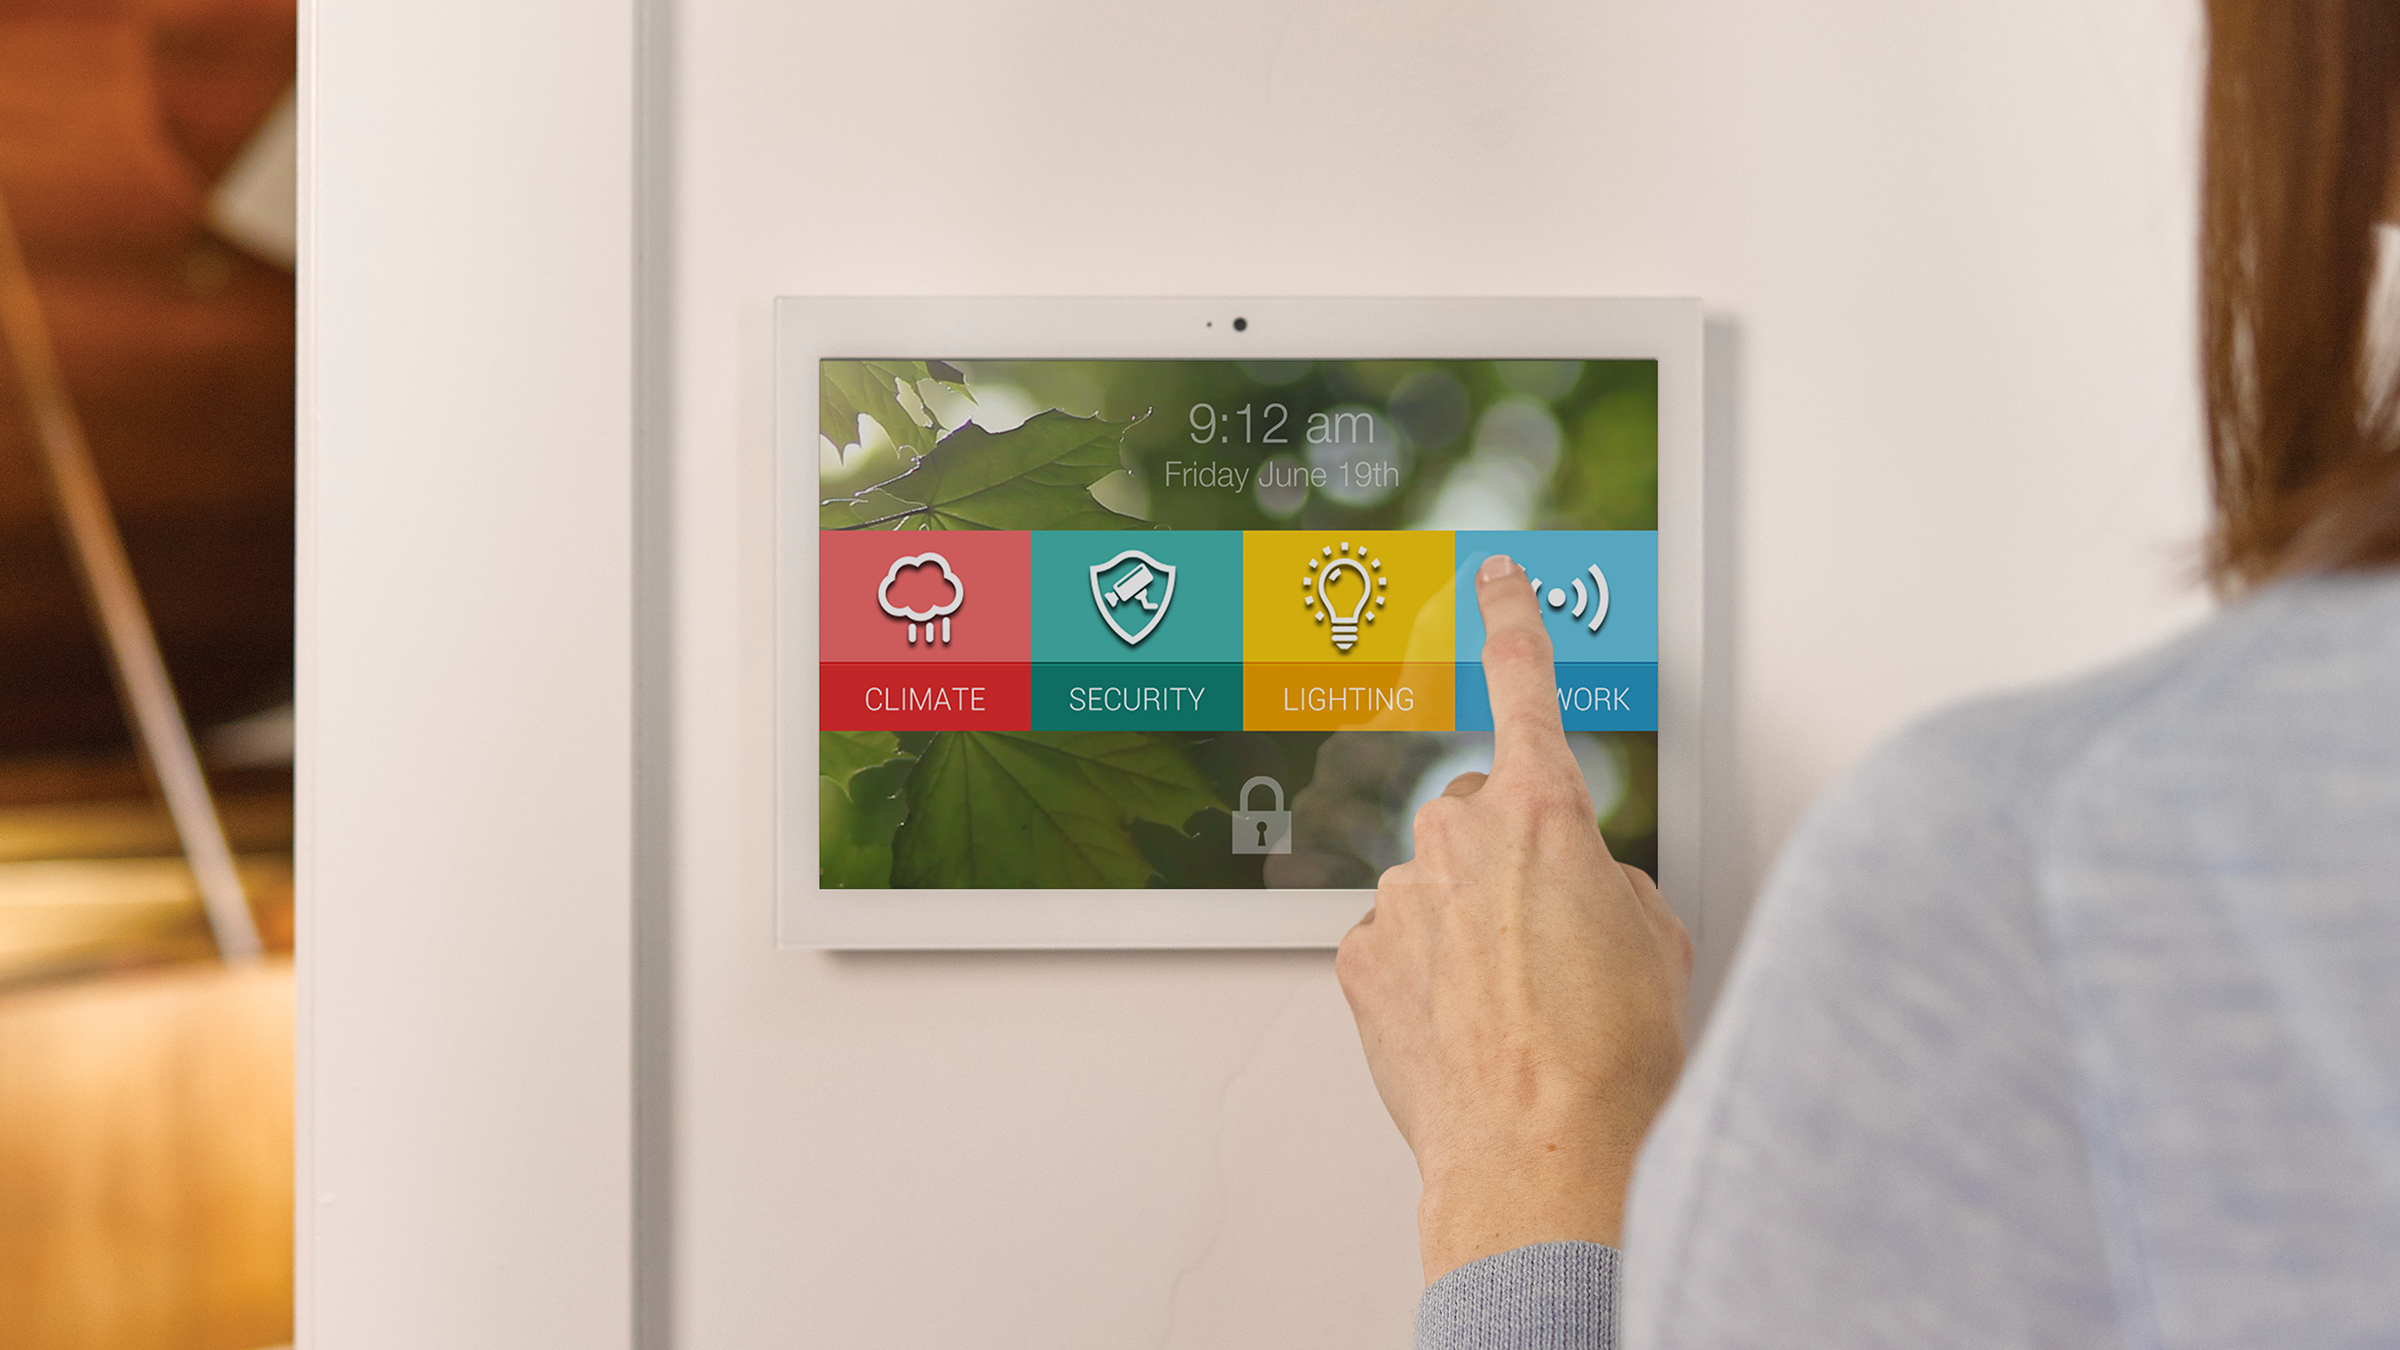 Person using a smart home touch screen UI mounted on a wall